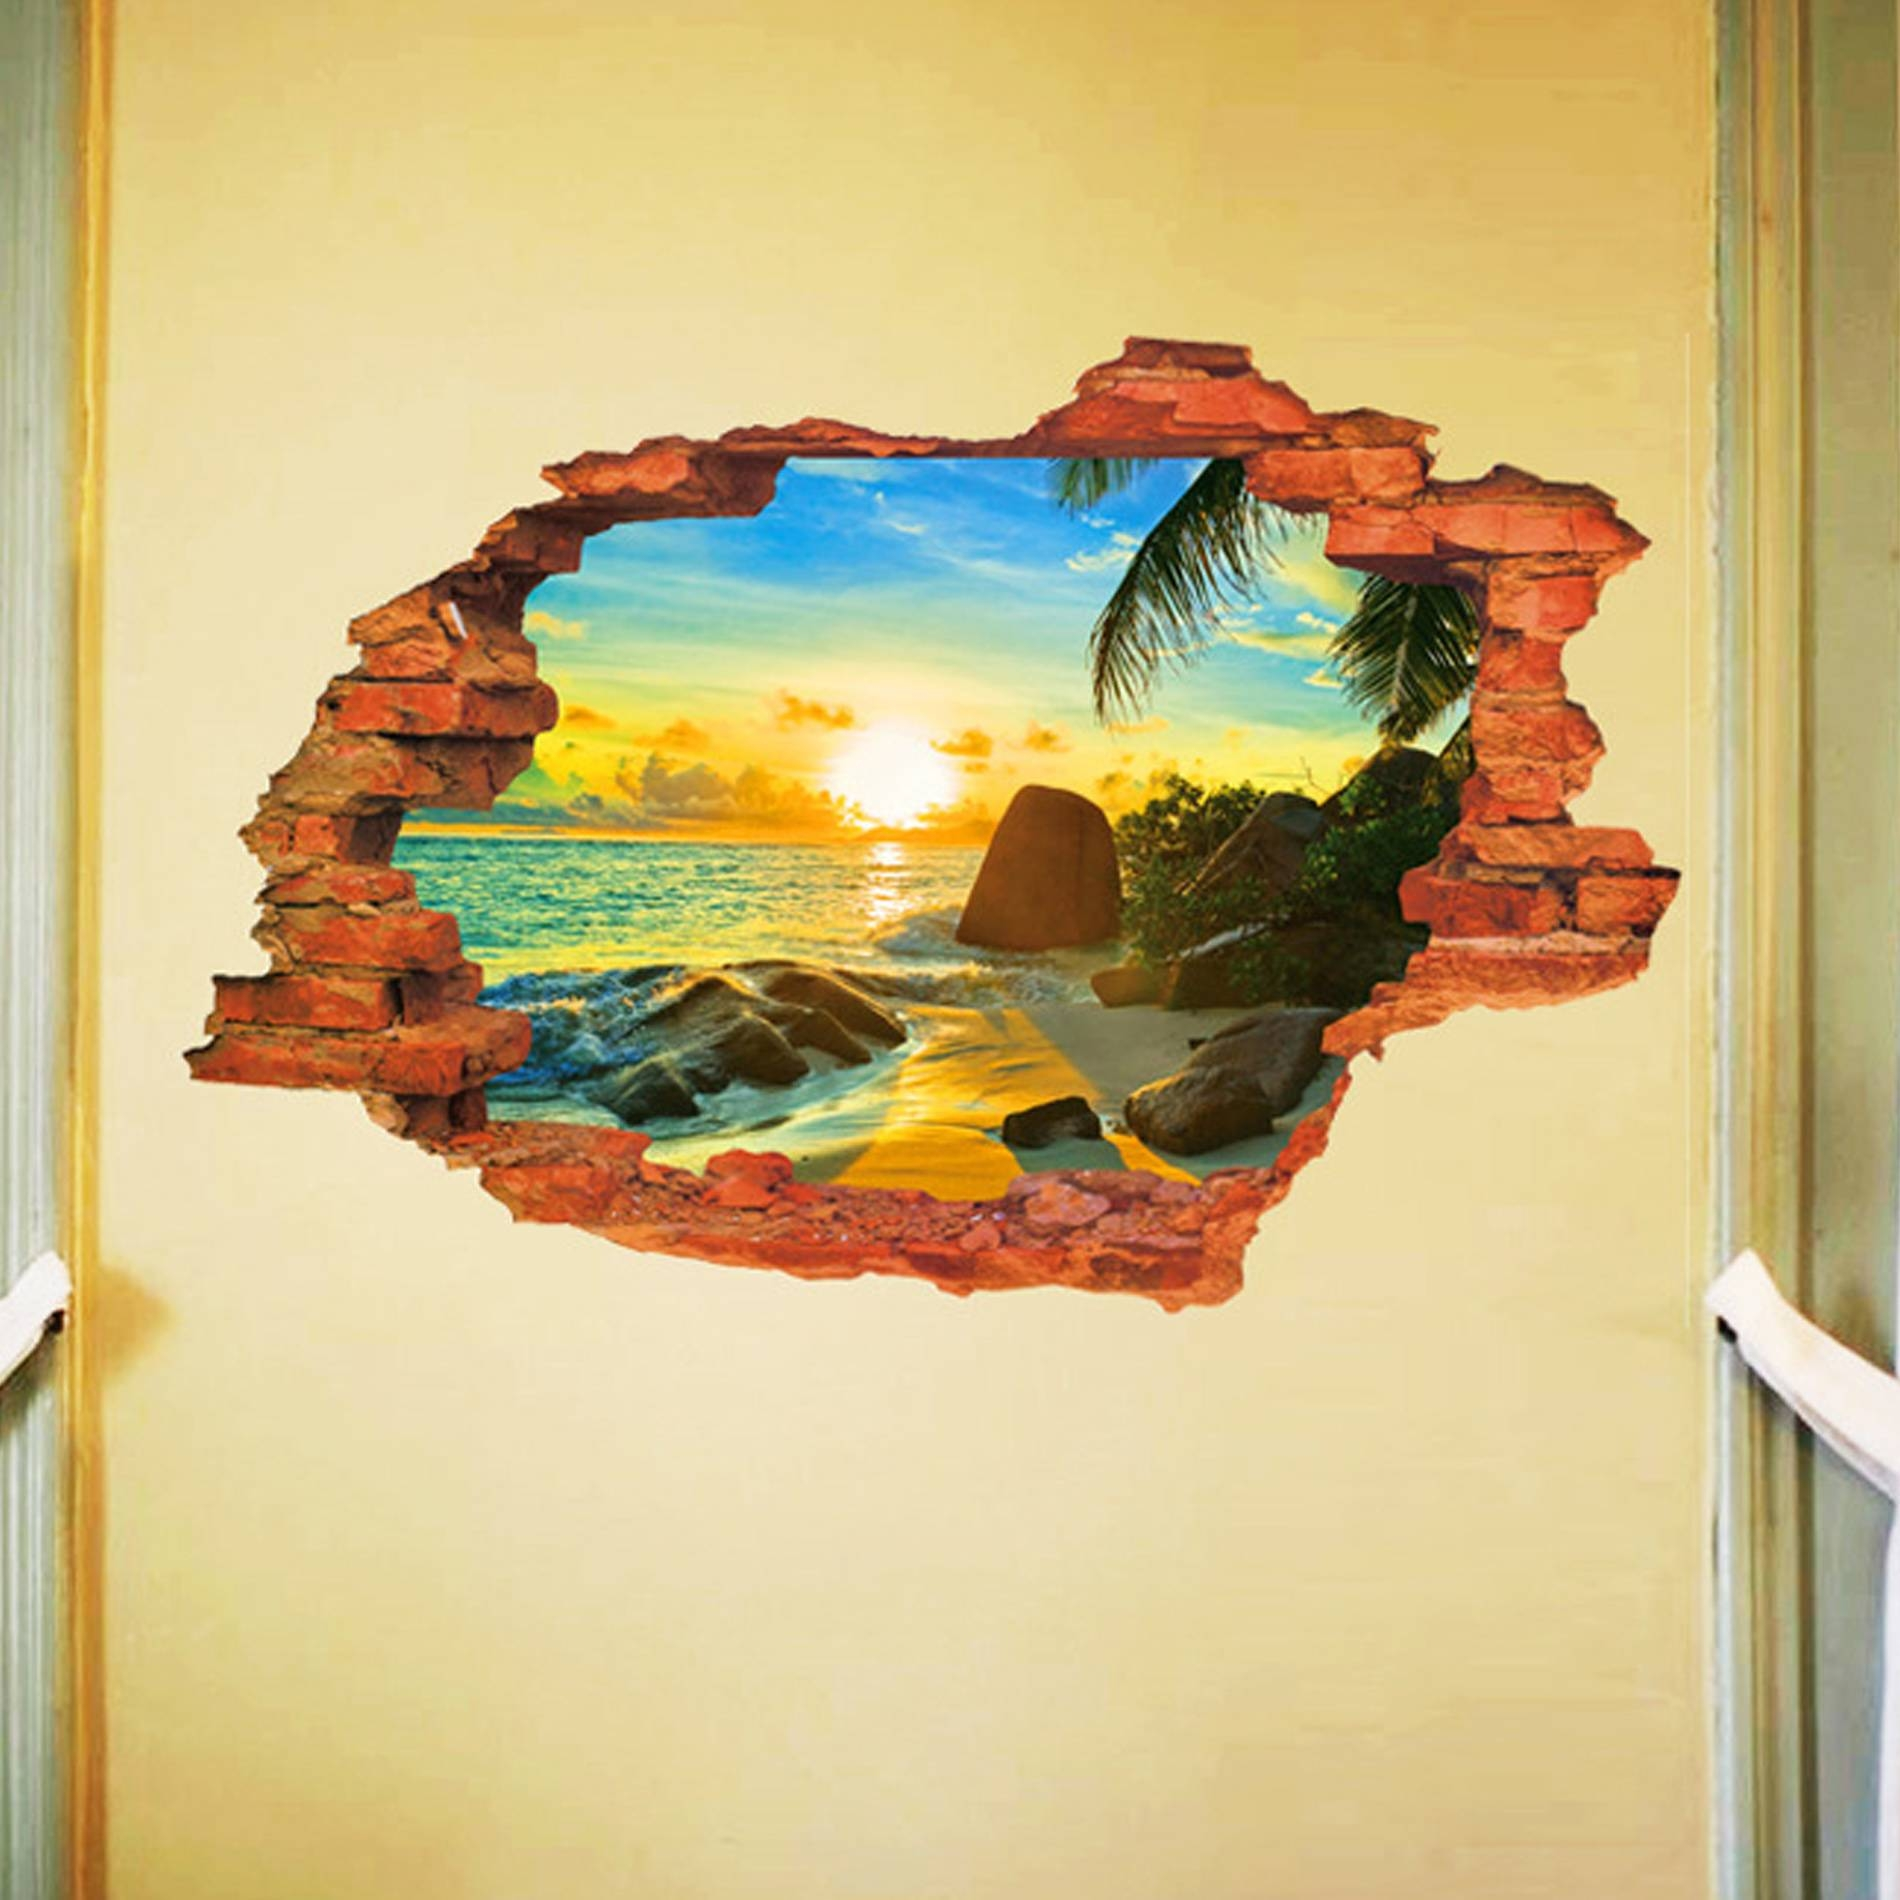 Removable 3D Broken Wall Stickers Art Vinyl Mural Home Decor + Key For Latest Vinyl 3D Wall Art (Gallery 5 of 20)